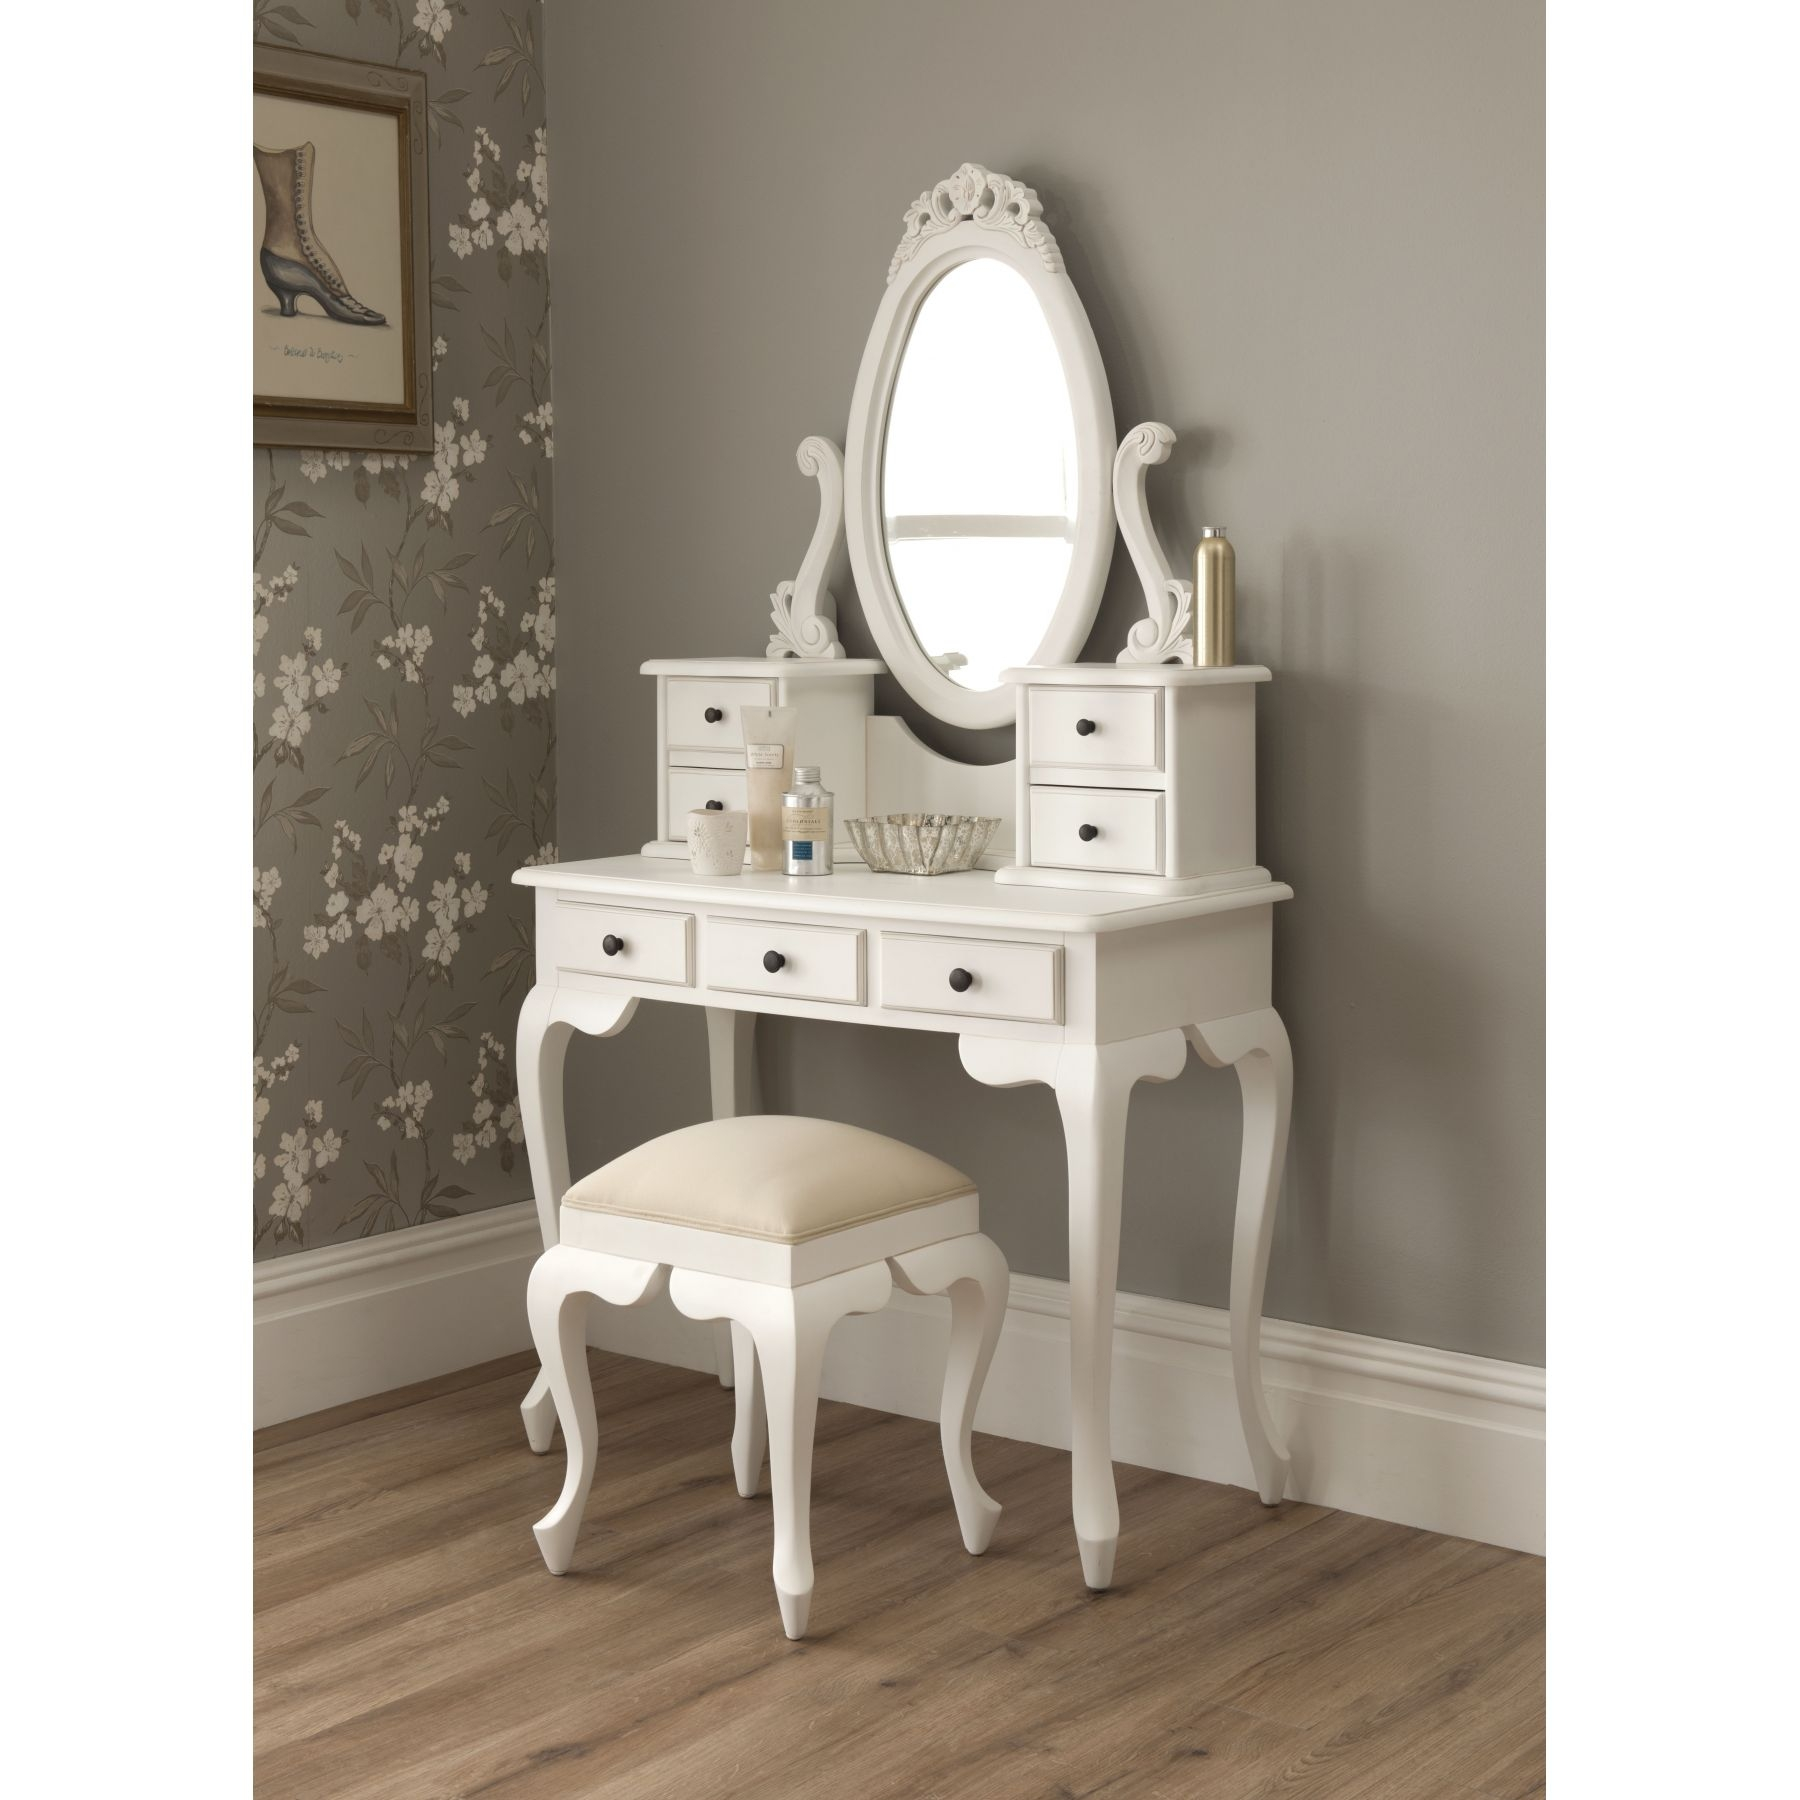 Awesome White Lacquer Solid Wood Corner Bedroom Vanity With throughout Small Mirrored Vanity - Bedroom Design Ideas